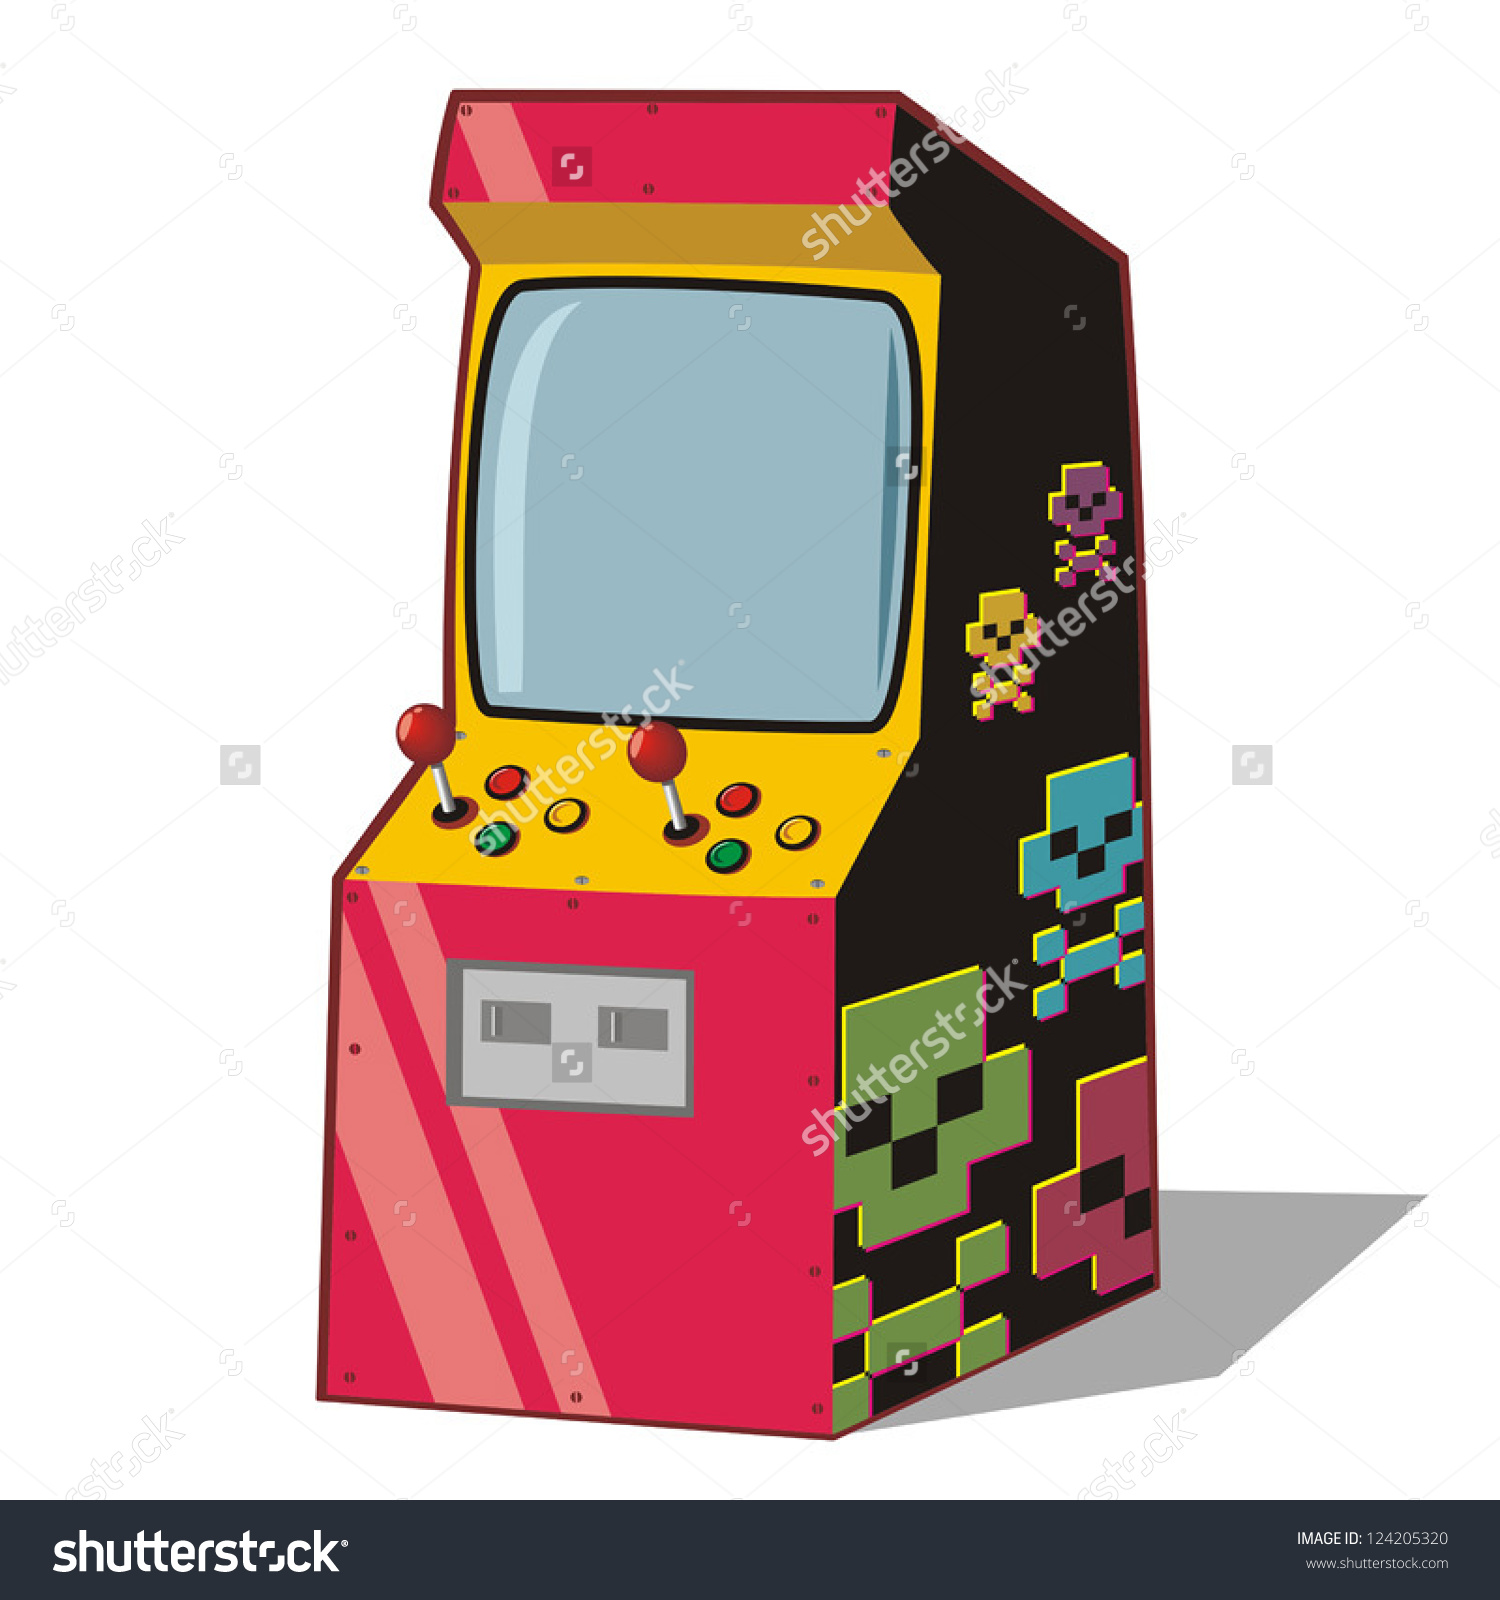 Arcade Video Game Clip Art.